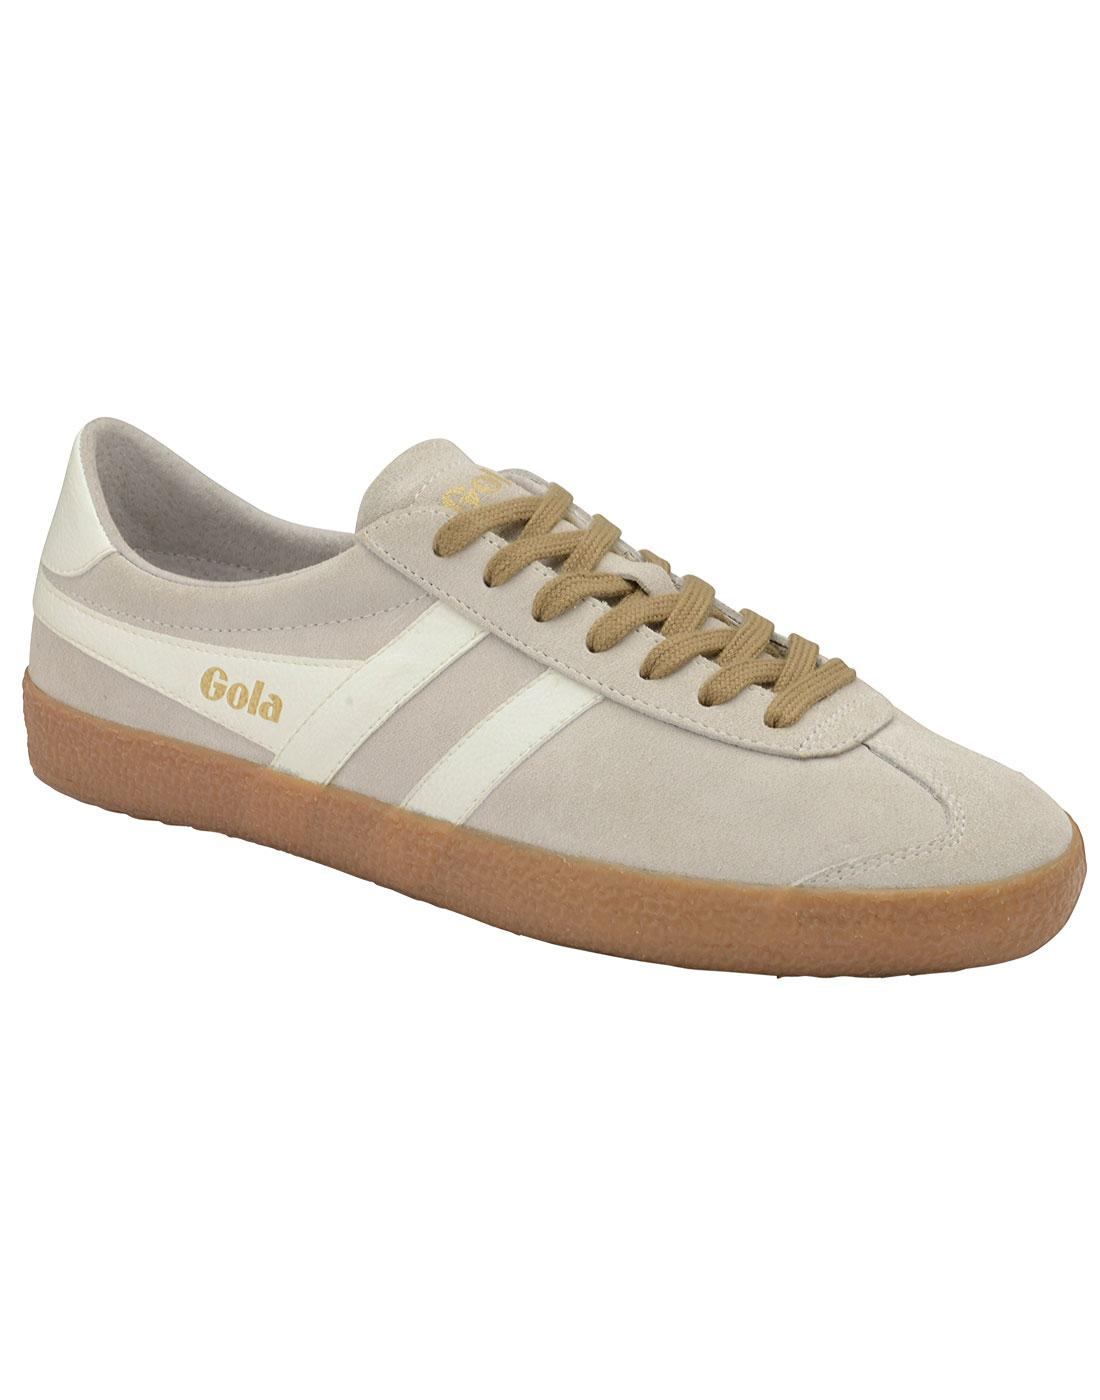 Specialist GOLA Retro 1970s Suede Trainers (OW/G)